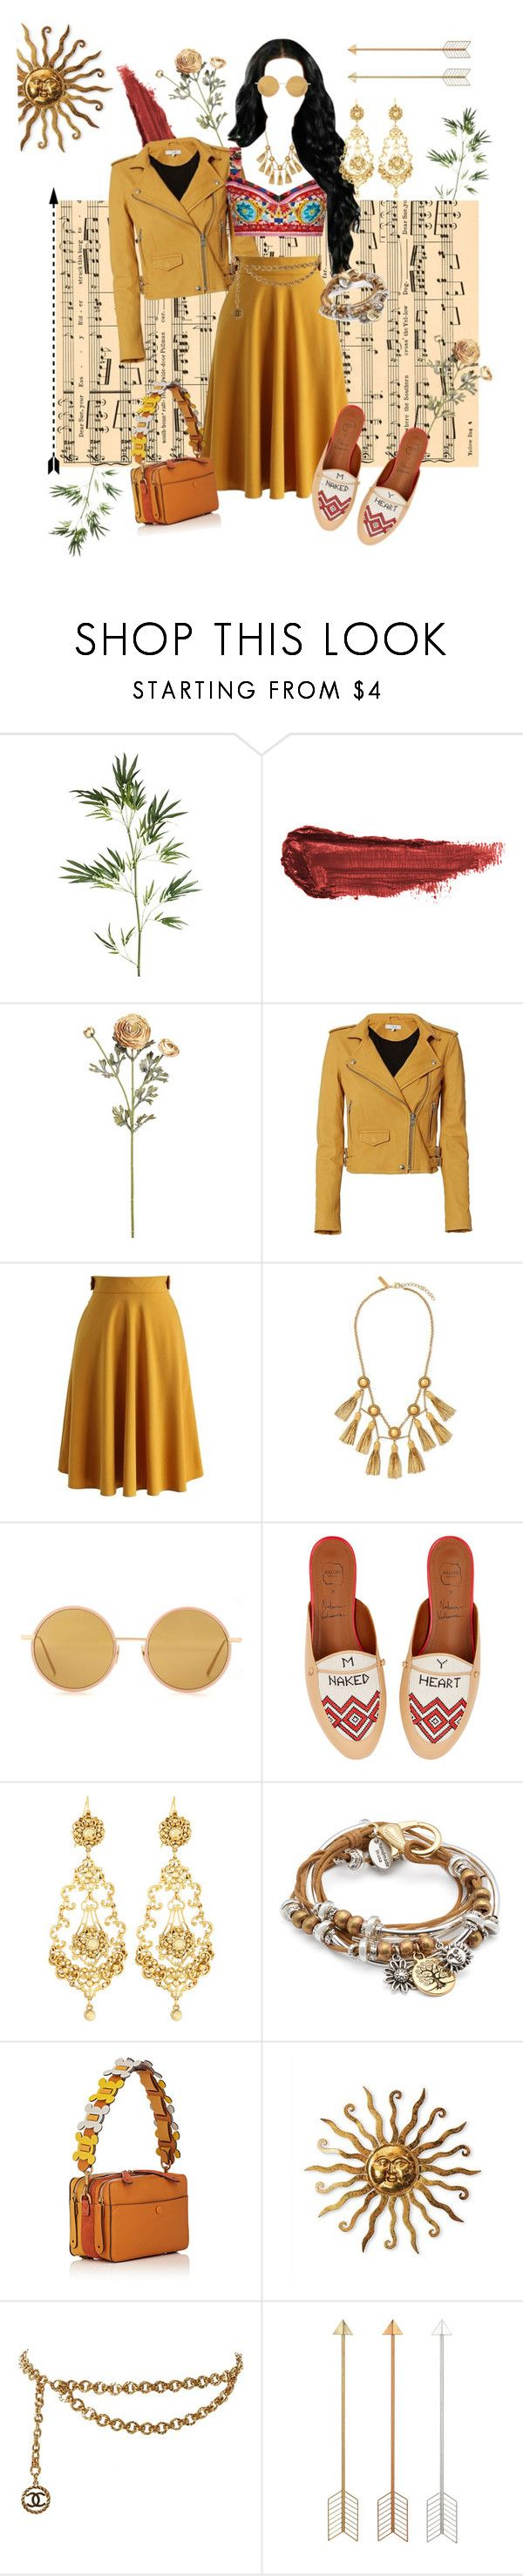 """""""Free spirited"""" by safia-moizuddin ❤ liked on Polyvore featuring Pier 1 Imports, By Terry, IRO, Chicwish, Rachel Zoe, Dolce&Gabbana, Acne Studios, Malone Souliers, Jose & Maria Barrera and Lizzy James"""